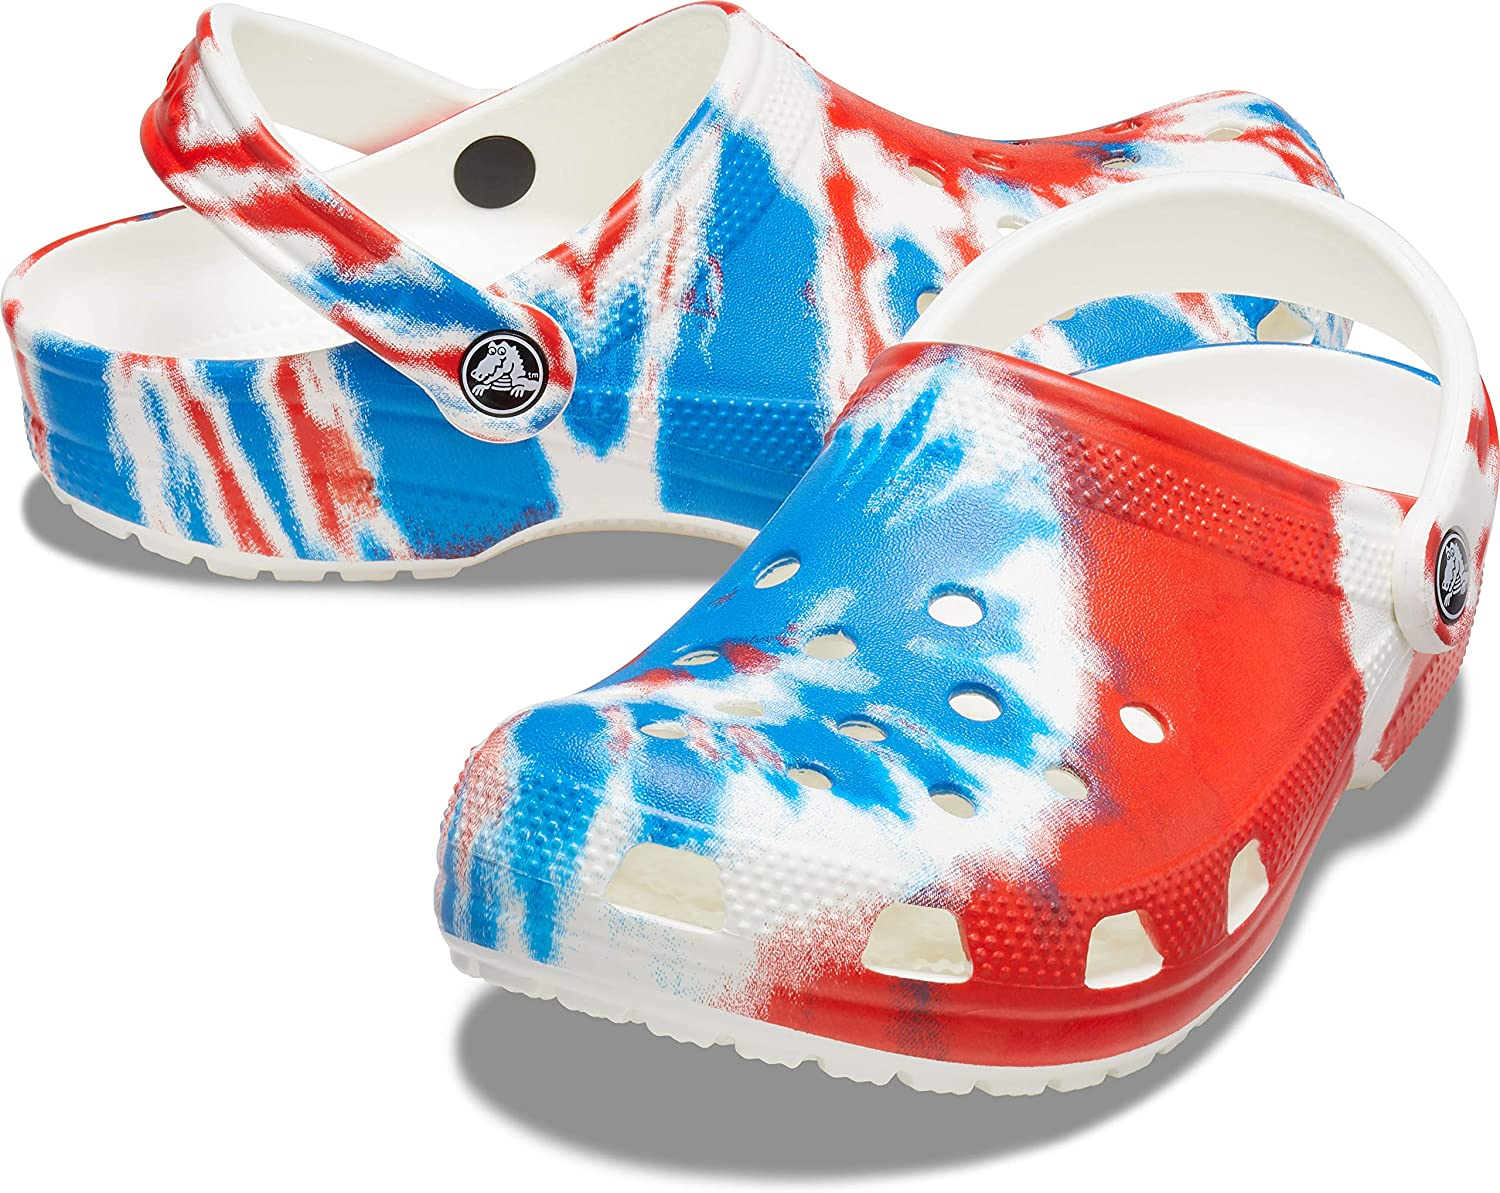 Crocs Mens and Womens Classic Tie Dye Clog Comfortable Slip on Casual Water Shoe